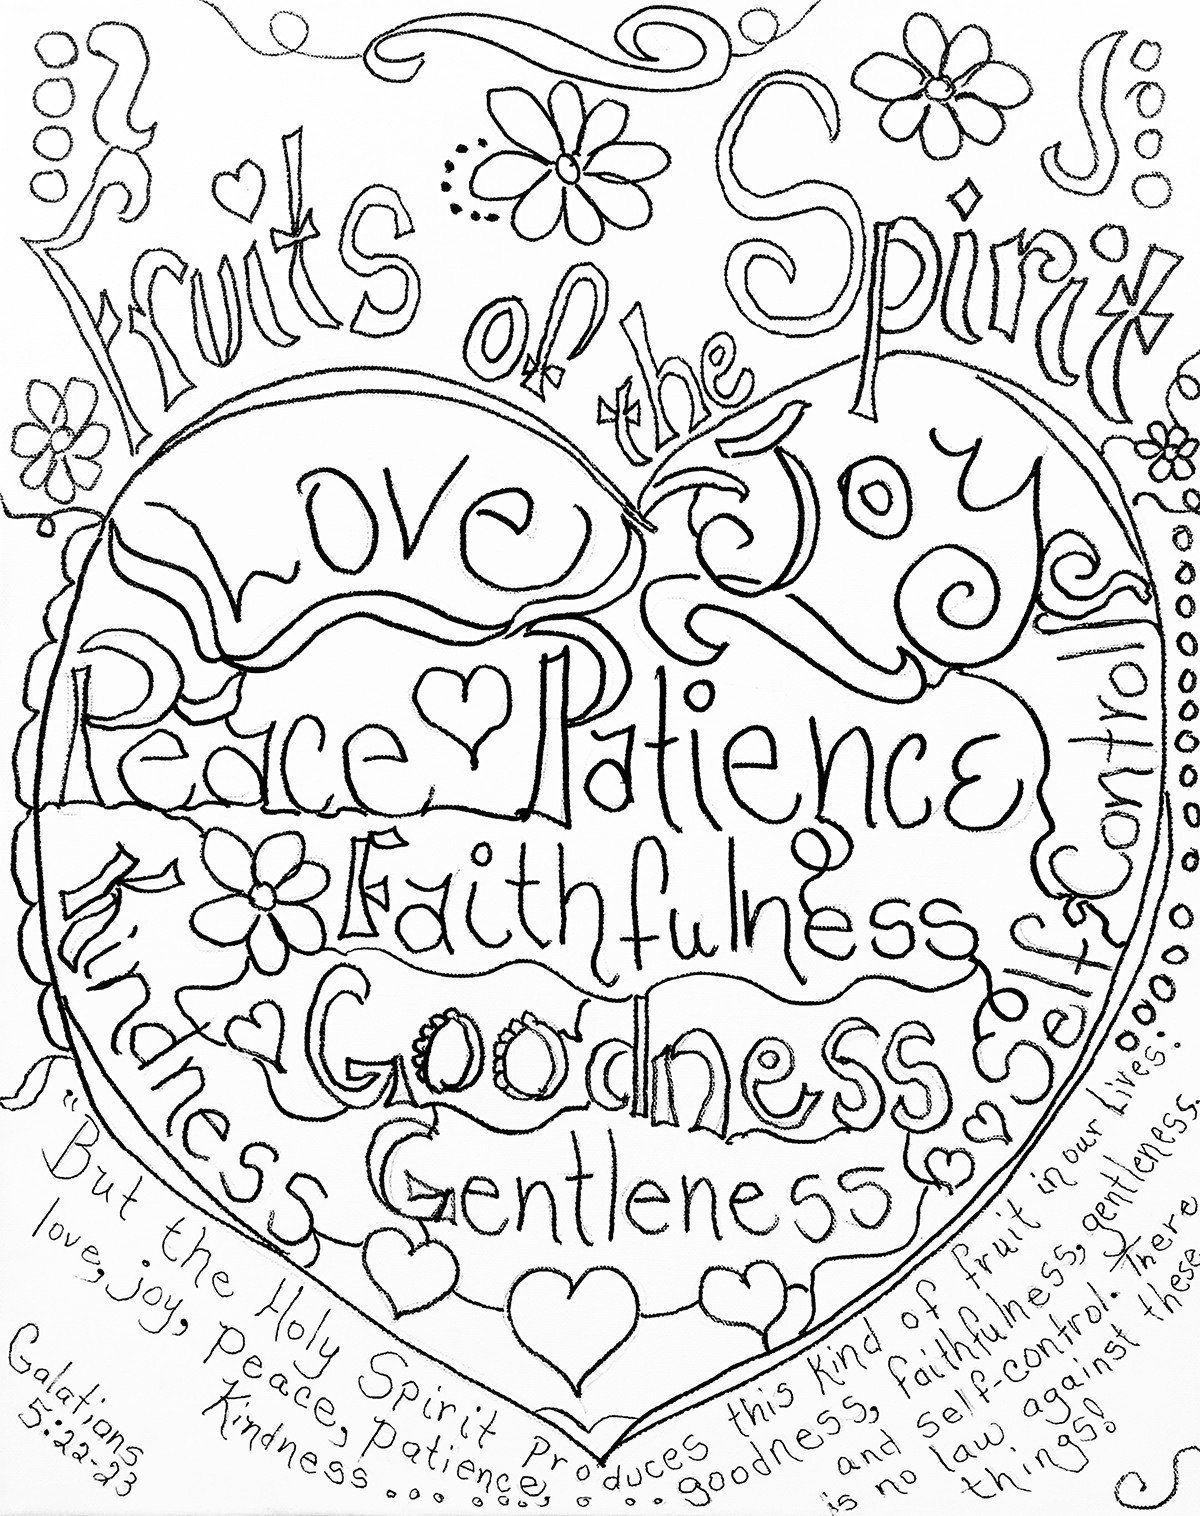 Image Result For Gifts Of The Spirit Catholic Bible Coloring Pages Free Bible Coloring Pages Coloring Pages